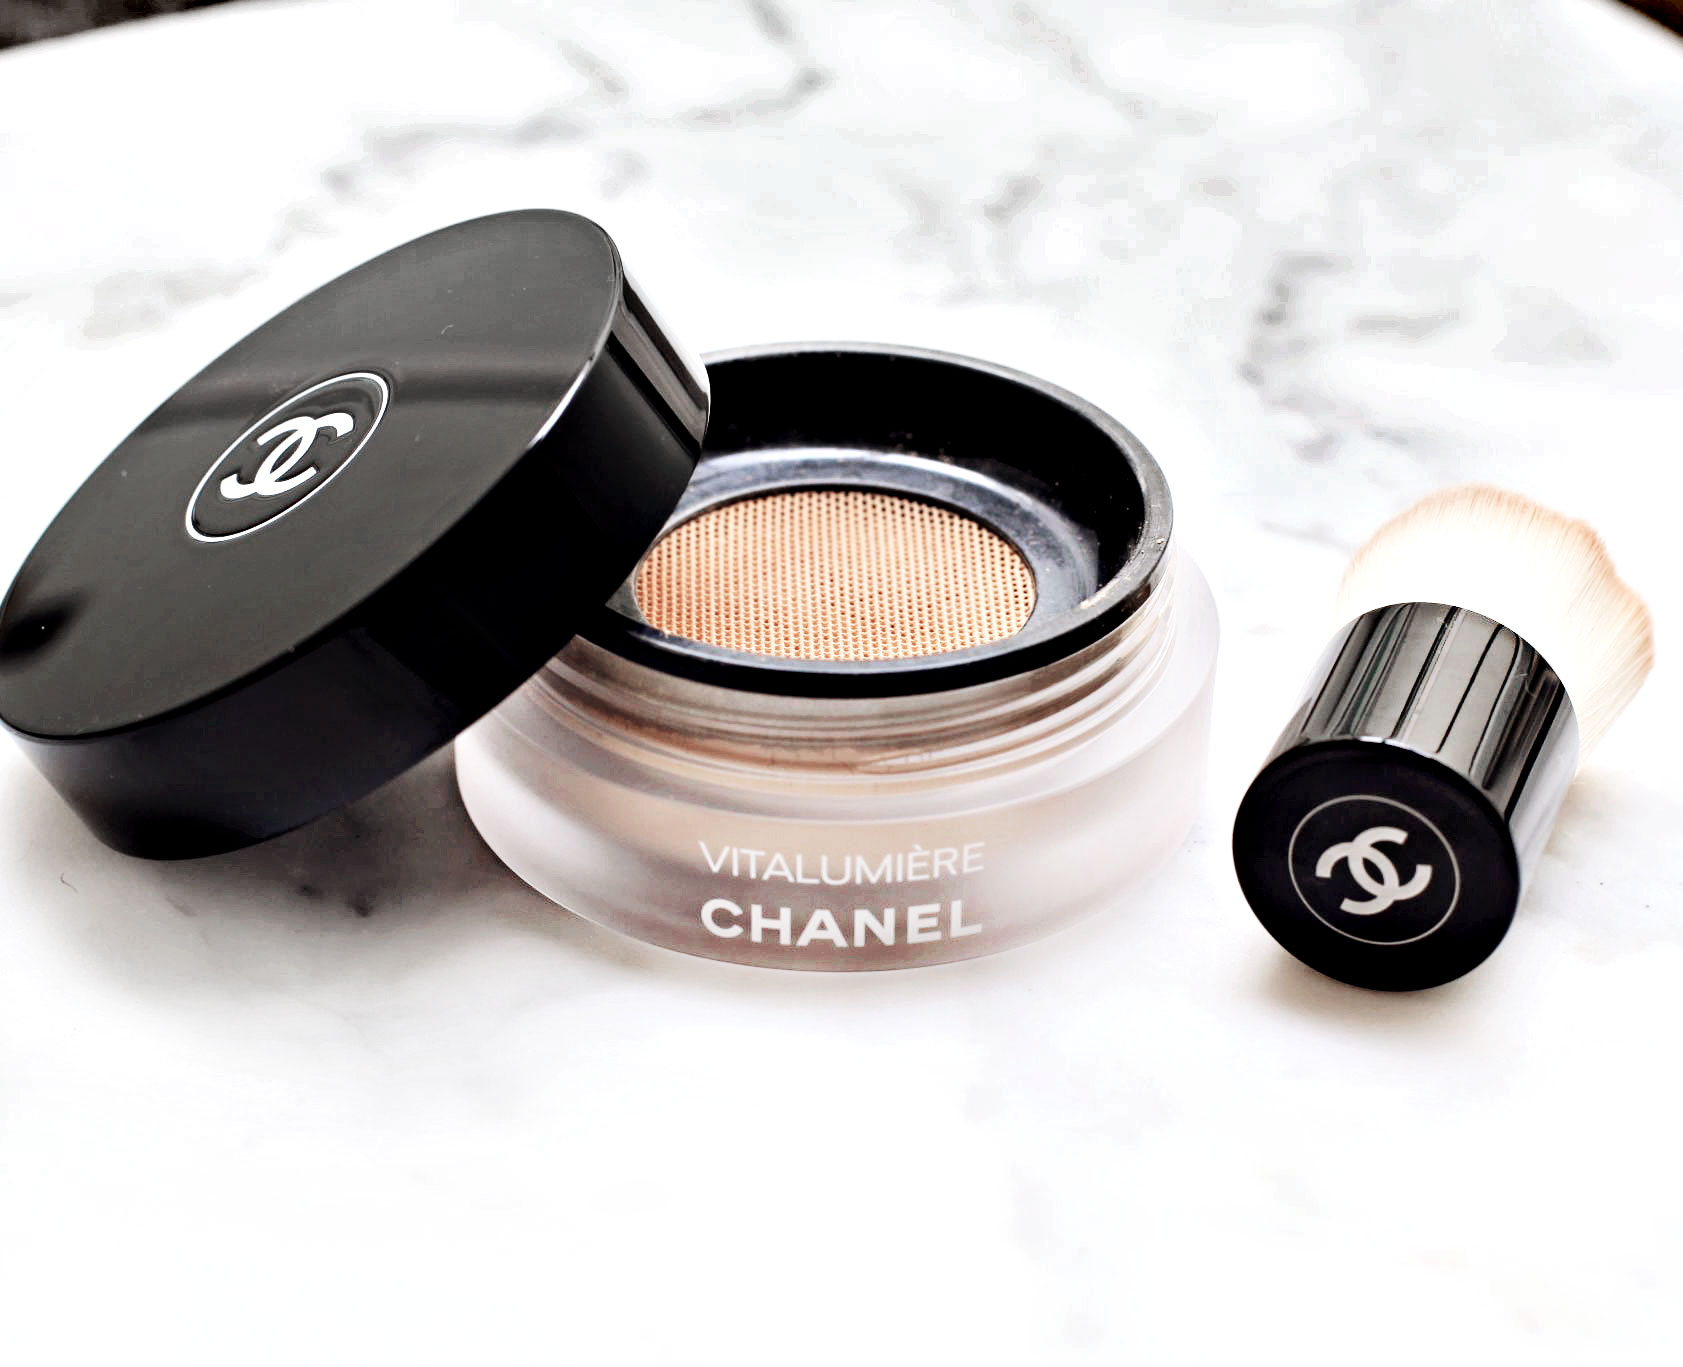 Chanel Vitalumiere Loose Powder Foundation with mini Kabuki brush Review and Swatch